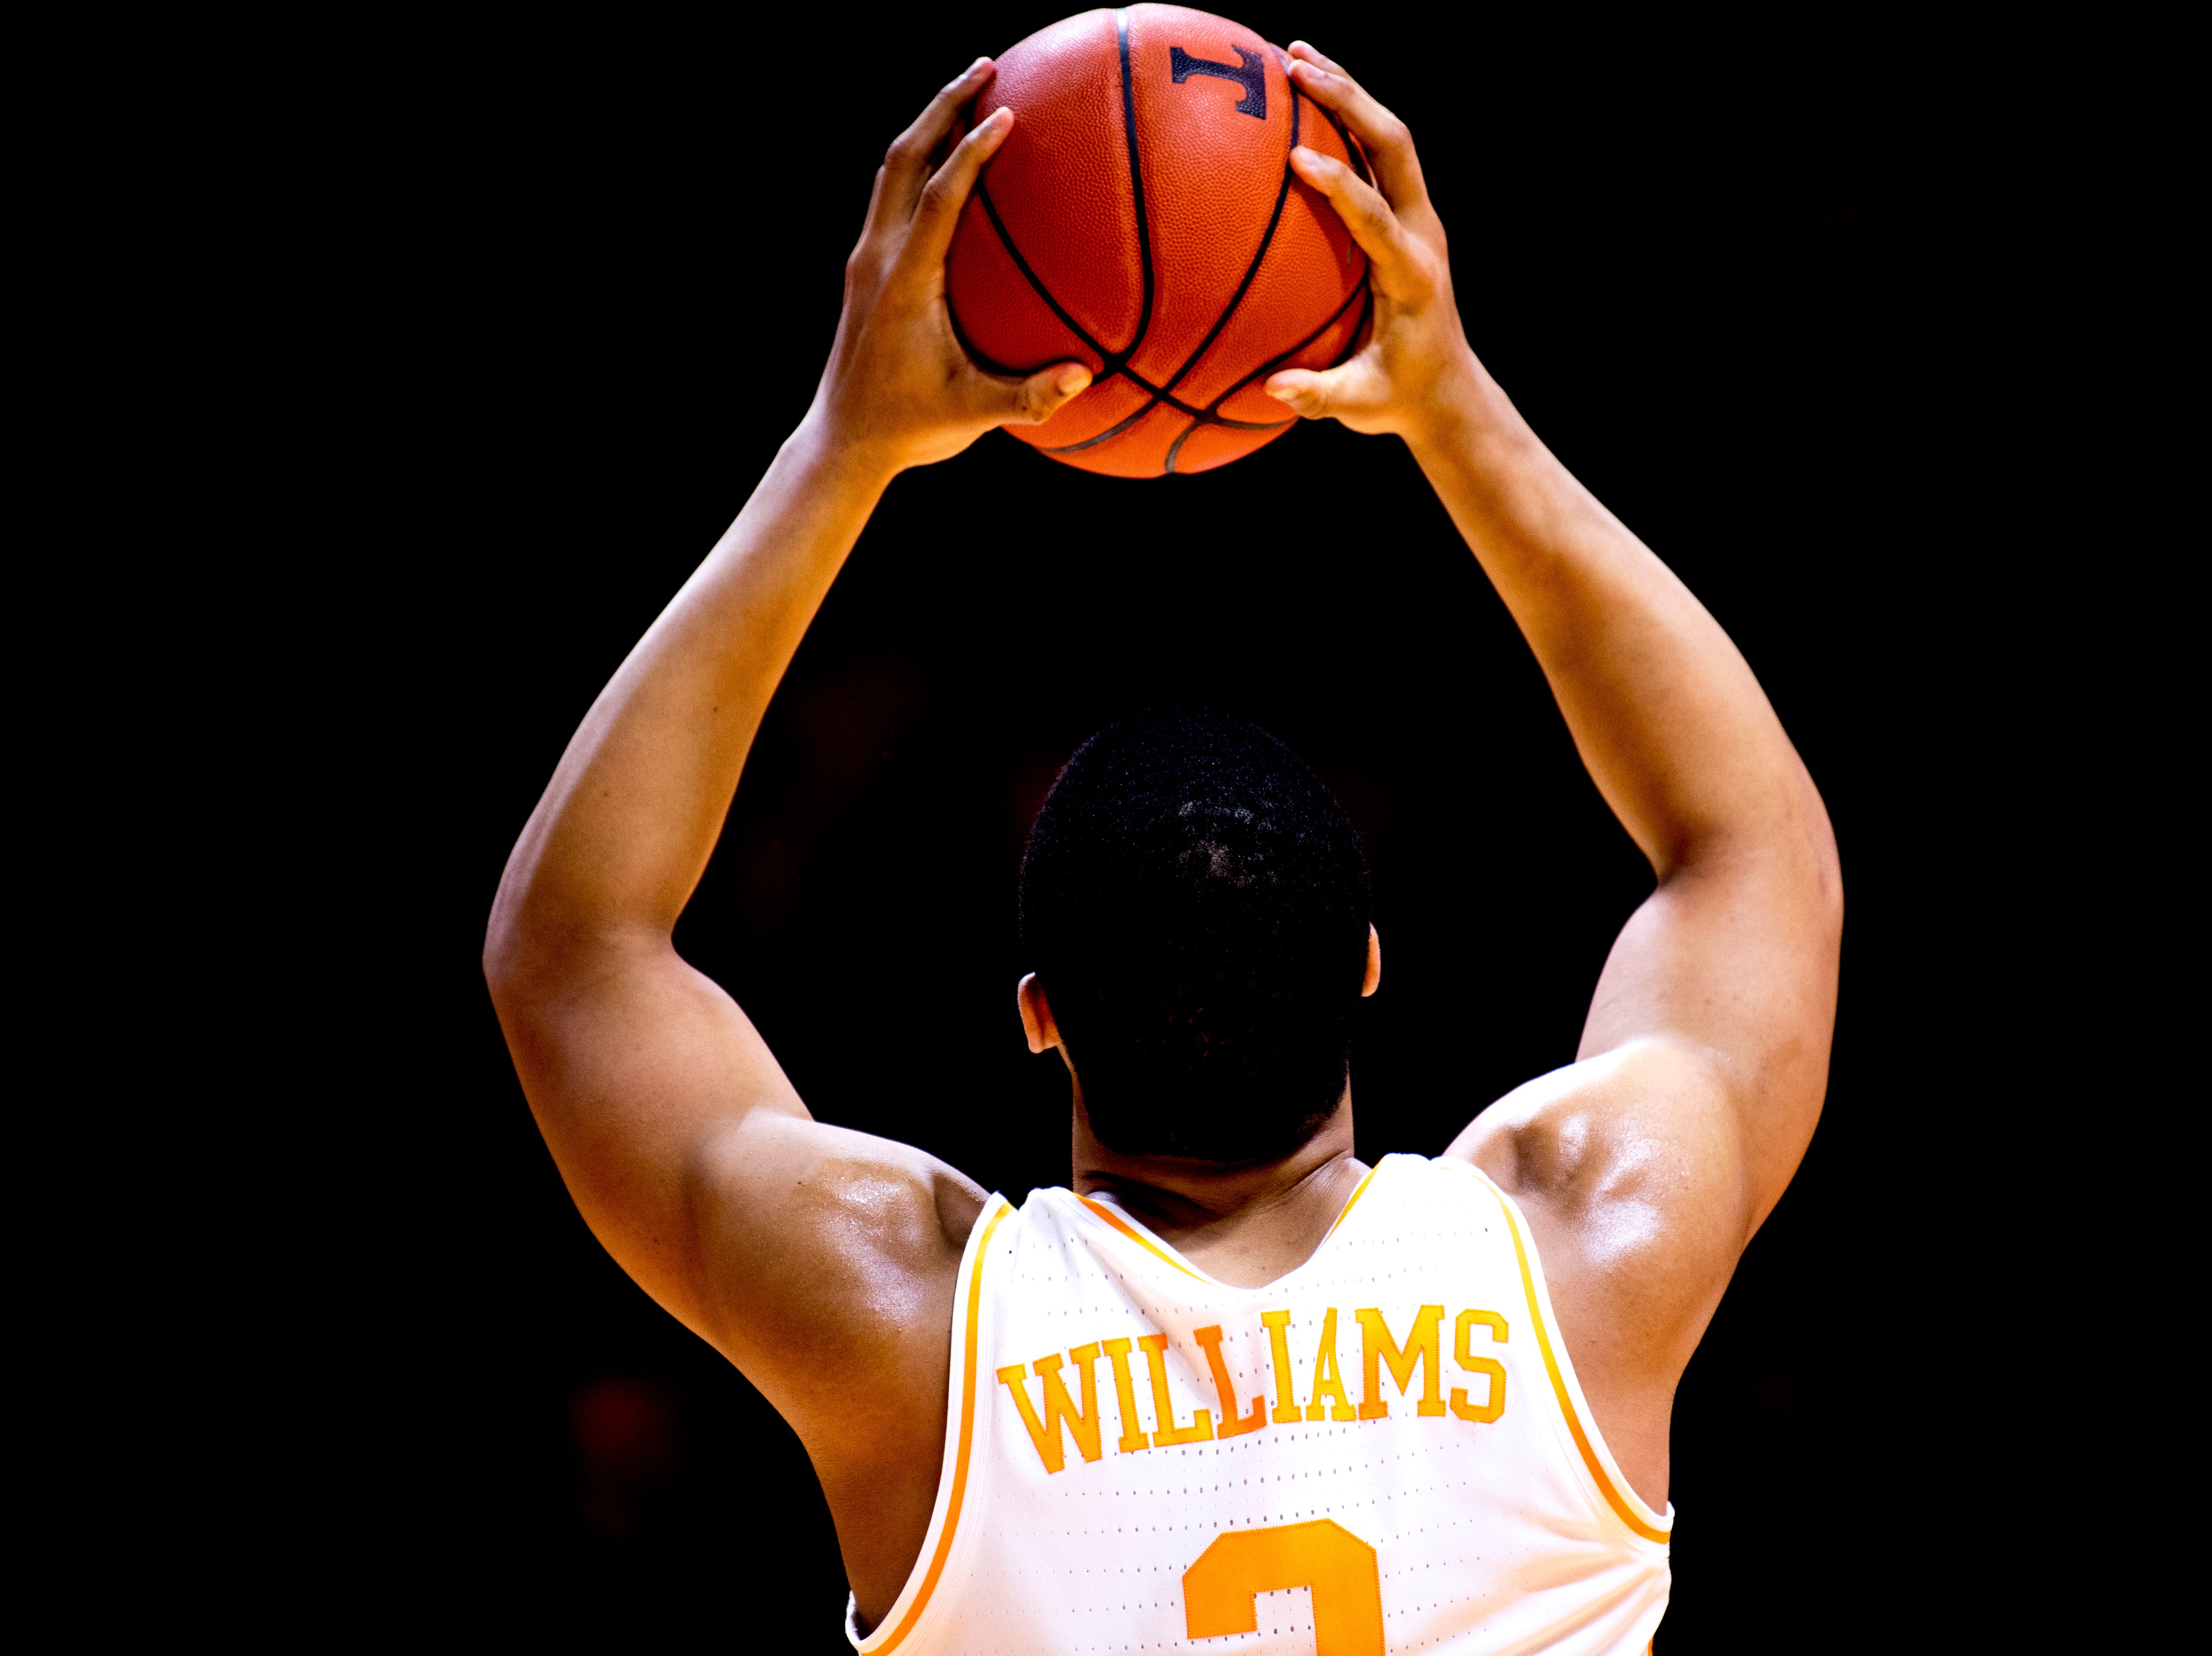 Tennessee forward Grant Williams (2) reacts after a play during a SEC/Big 12 Challenge game between Tennessee and West Virginia at Thompson-Boling Arena in Knoxville, Tennessee on Saturday, January 26, 2019.